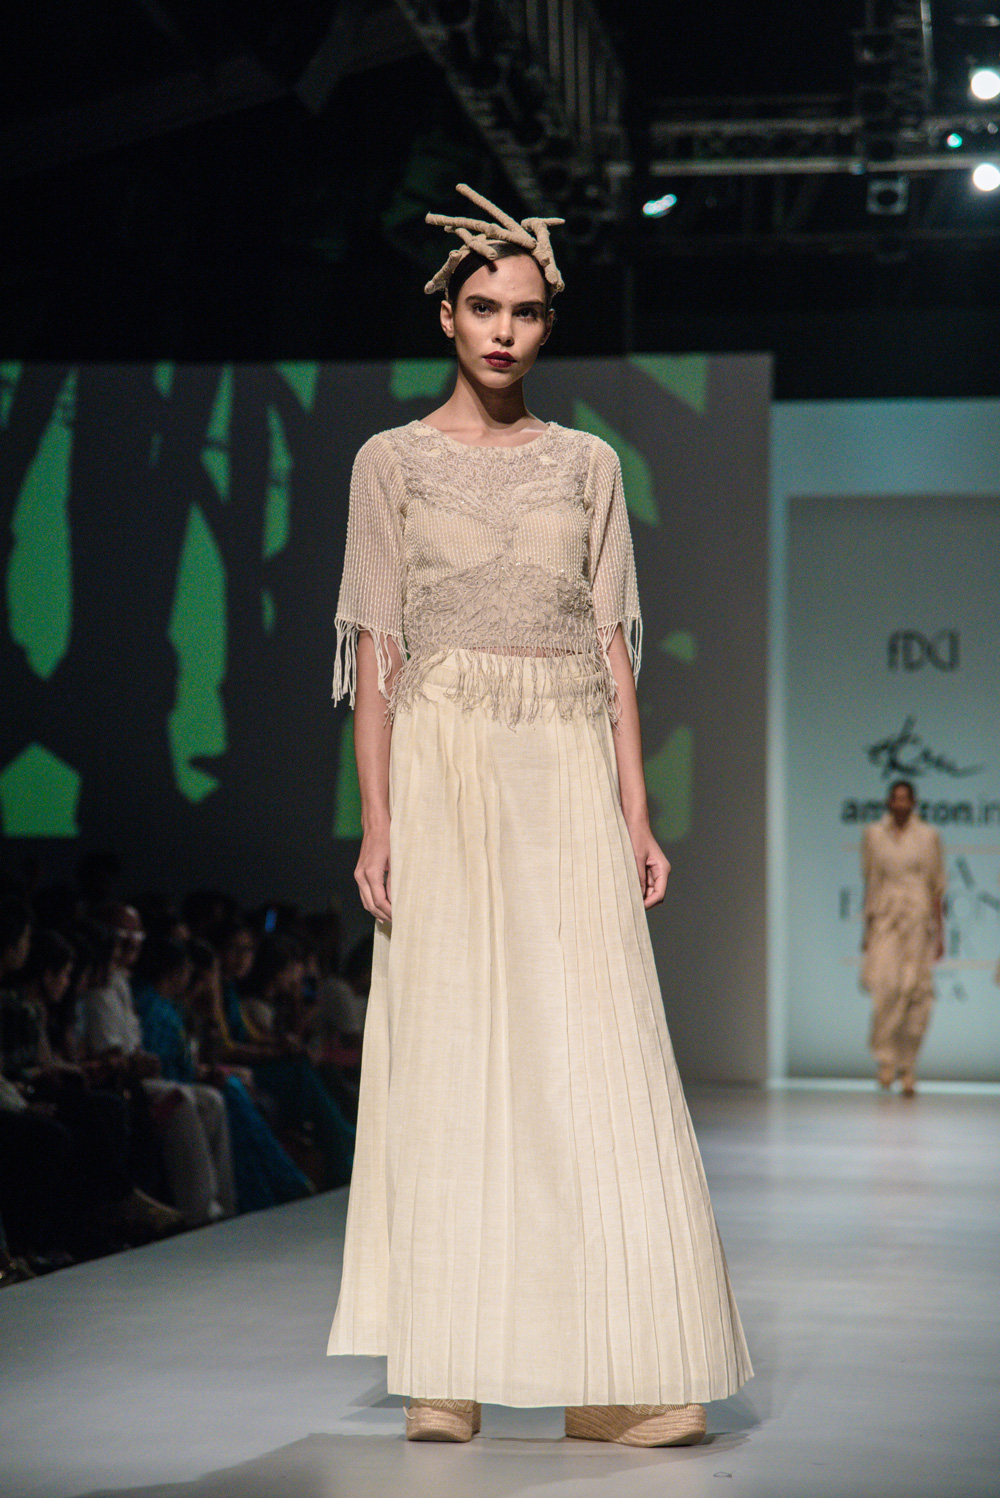 Ekru by Ektaa FDCI Amazon India Fashion Week Spring Summer 2018 Look 3